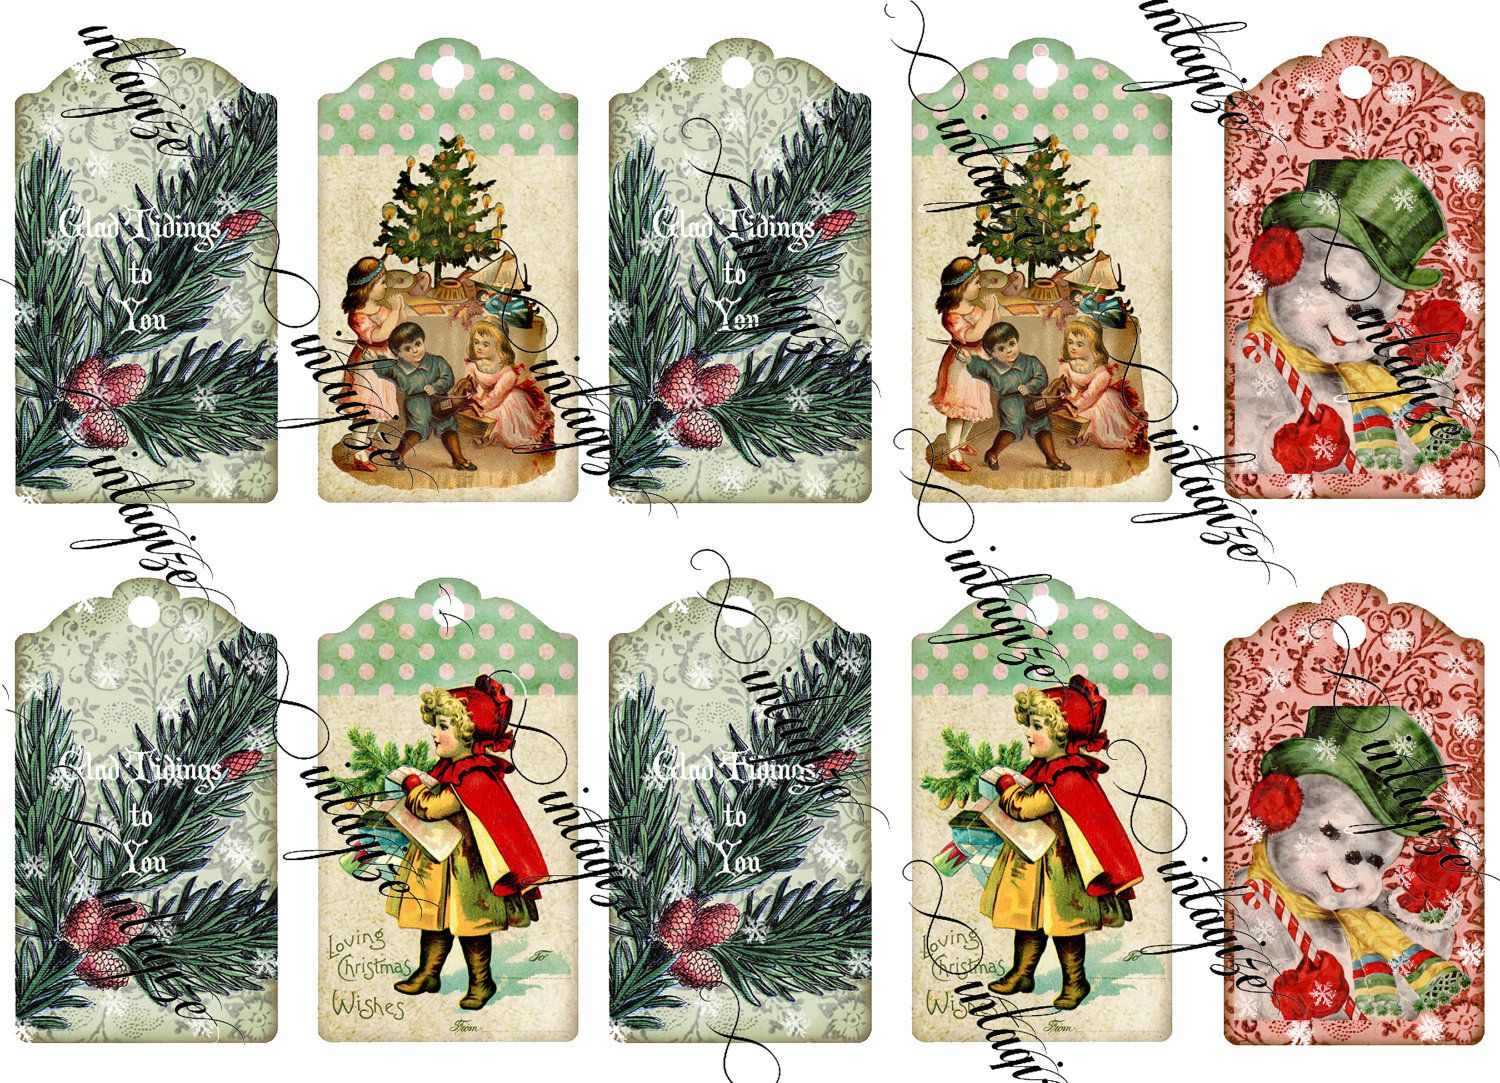 Pinjoan Keller On Vintage Looking Tags For All Time | Pinterest - Free Printable Vintage Christmas Tags For Gifts